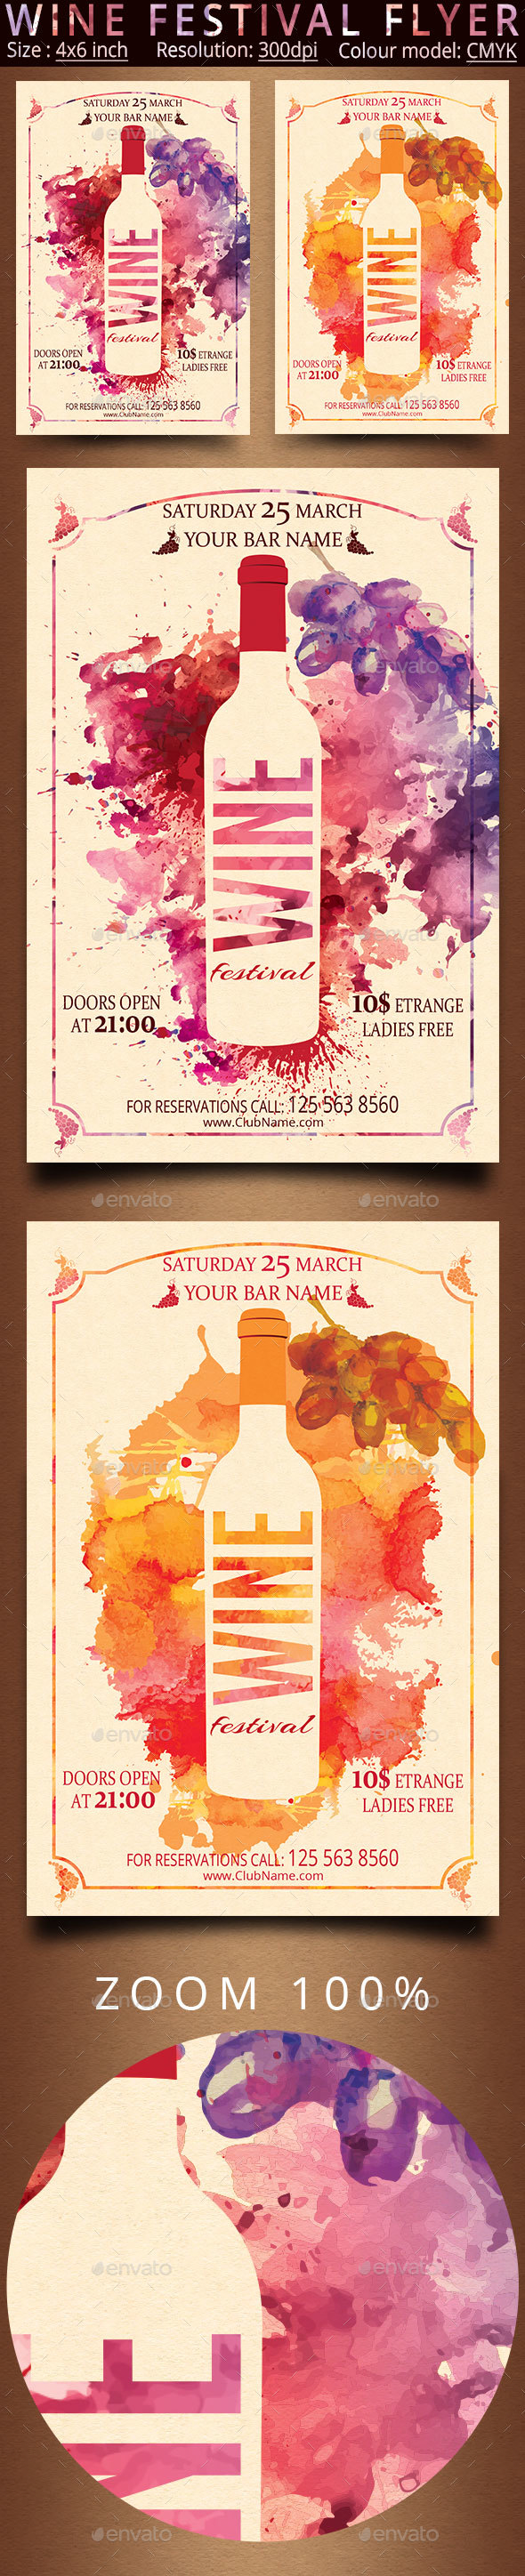 Wine Festival Flyer - Events Flyers